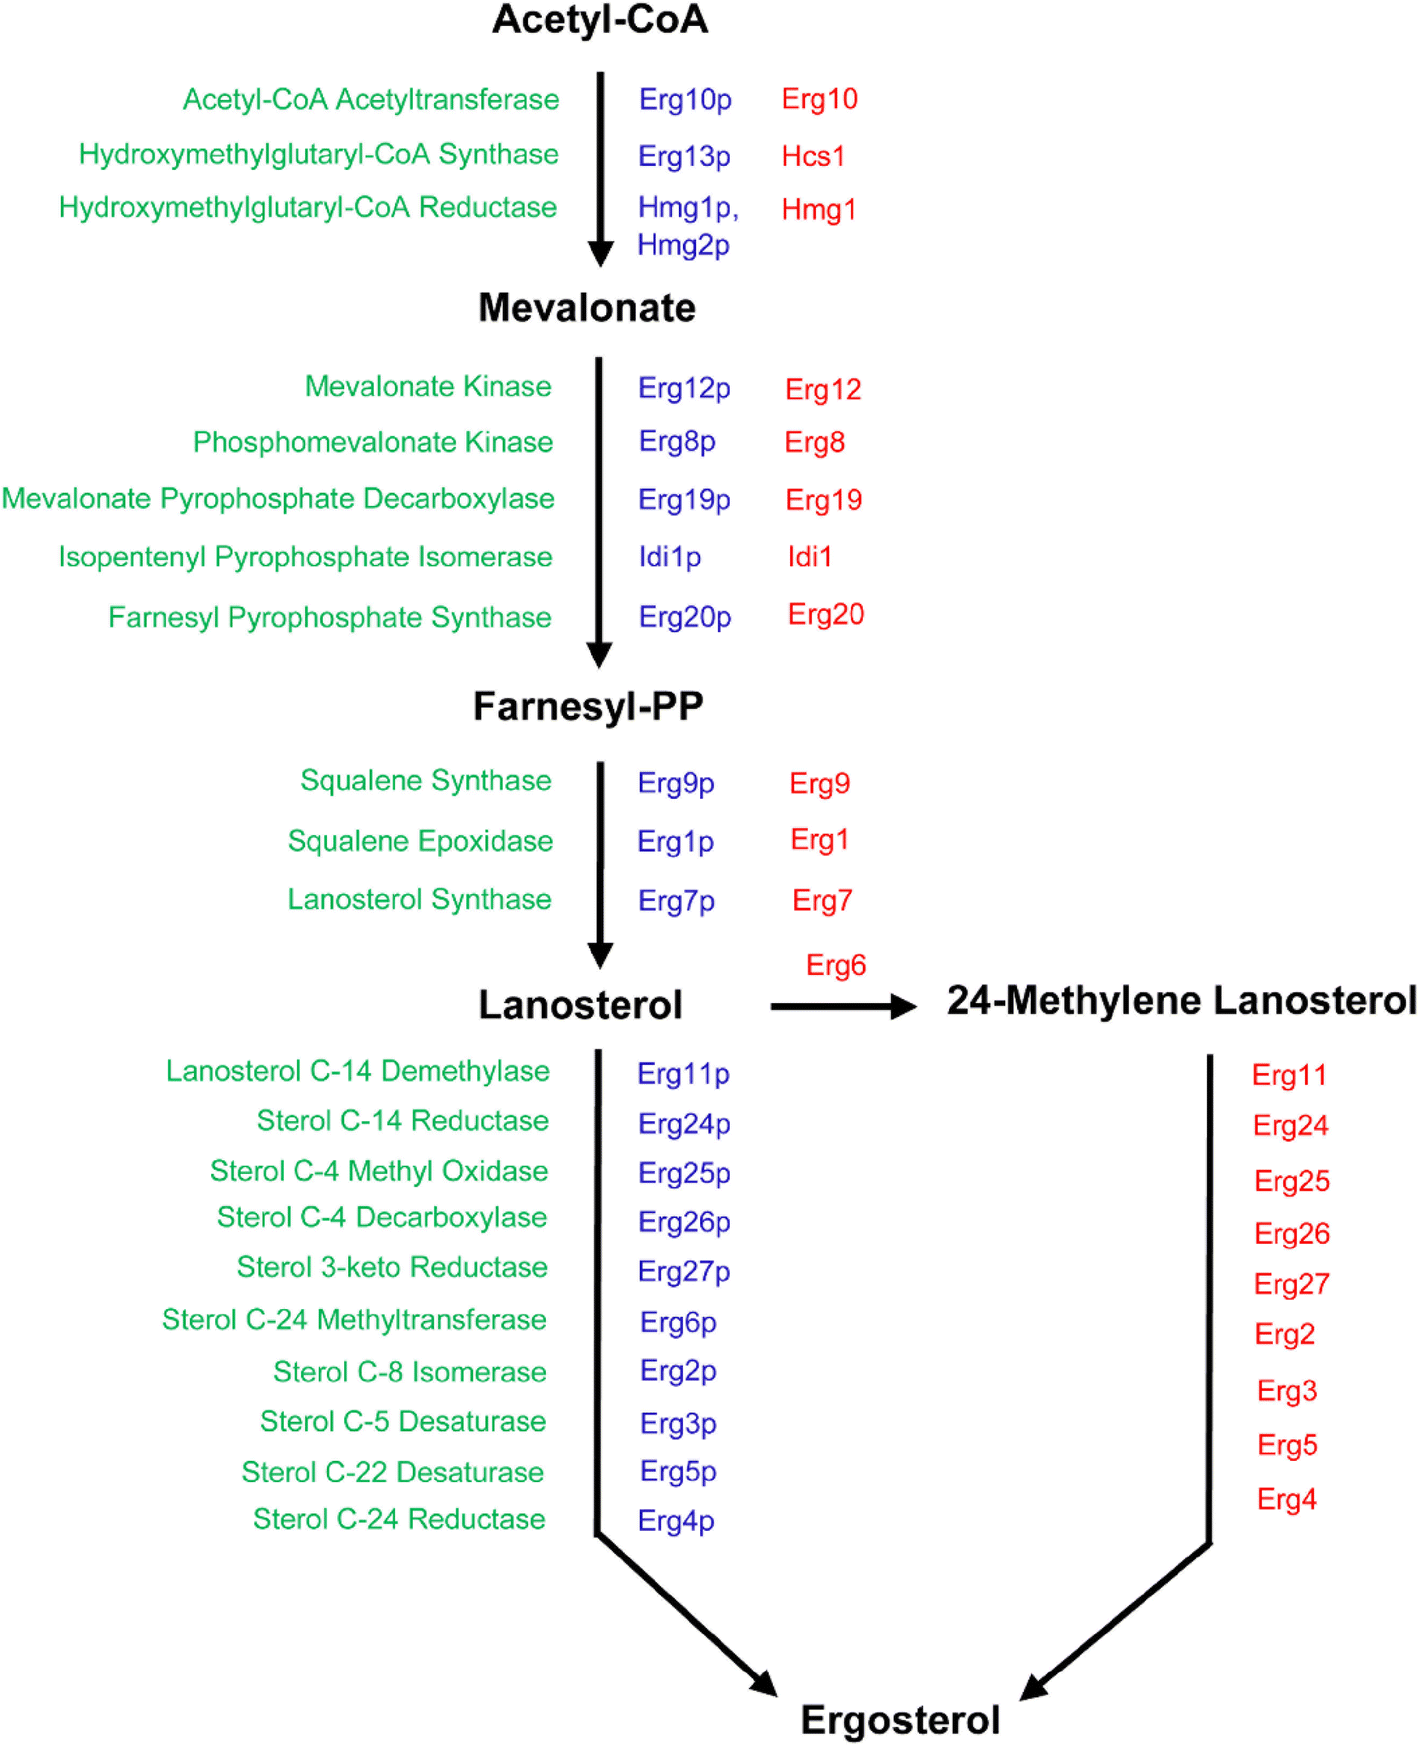 Outline of the biosynthesis and regulation of ergosterol in